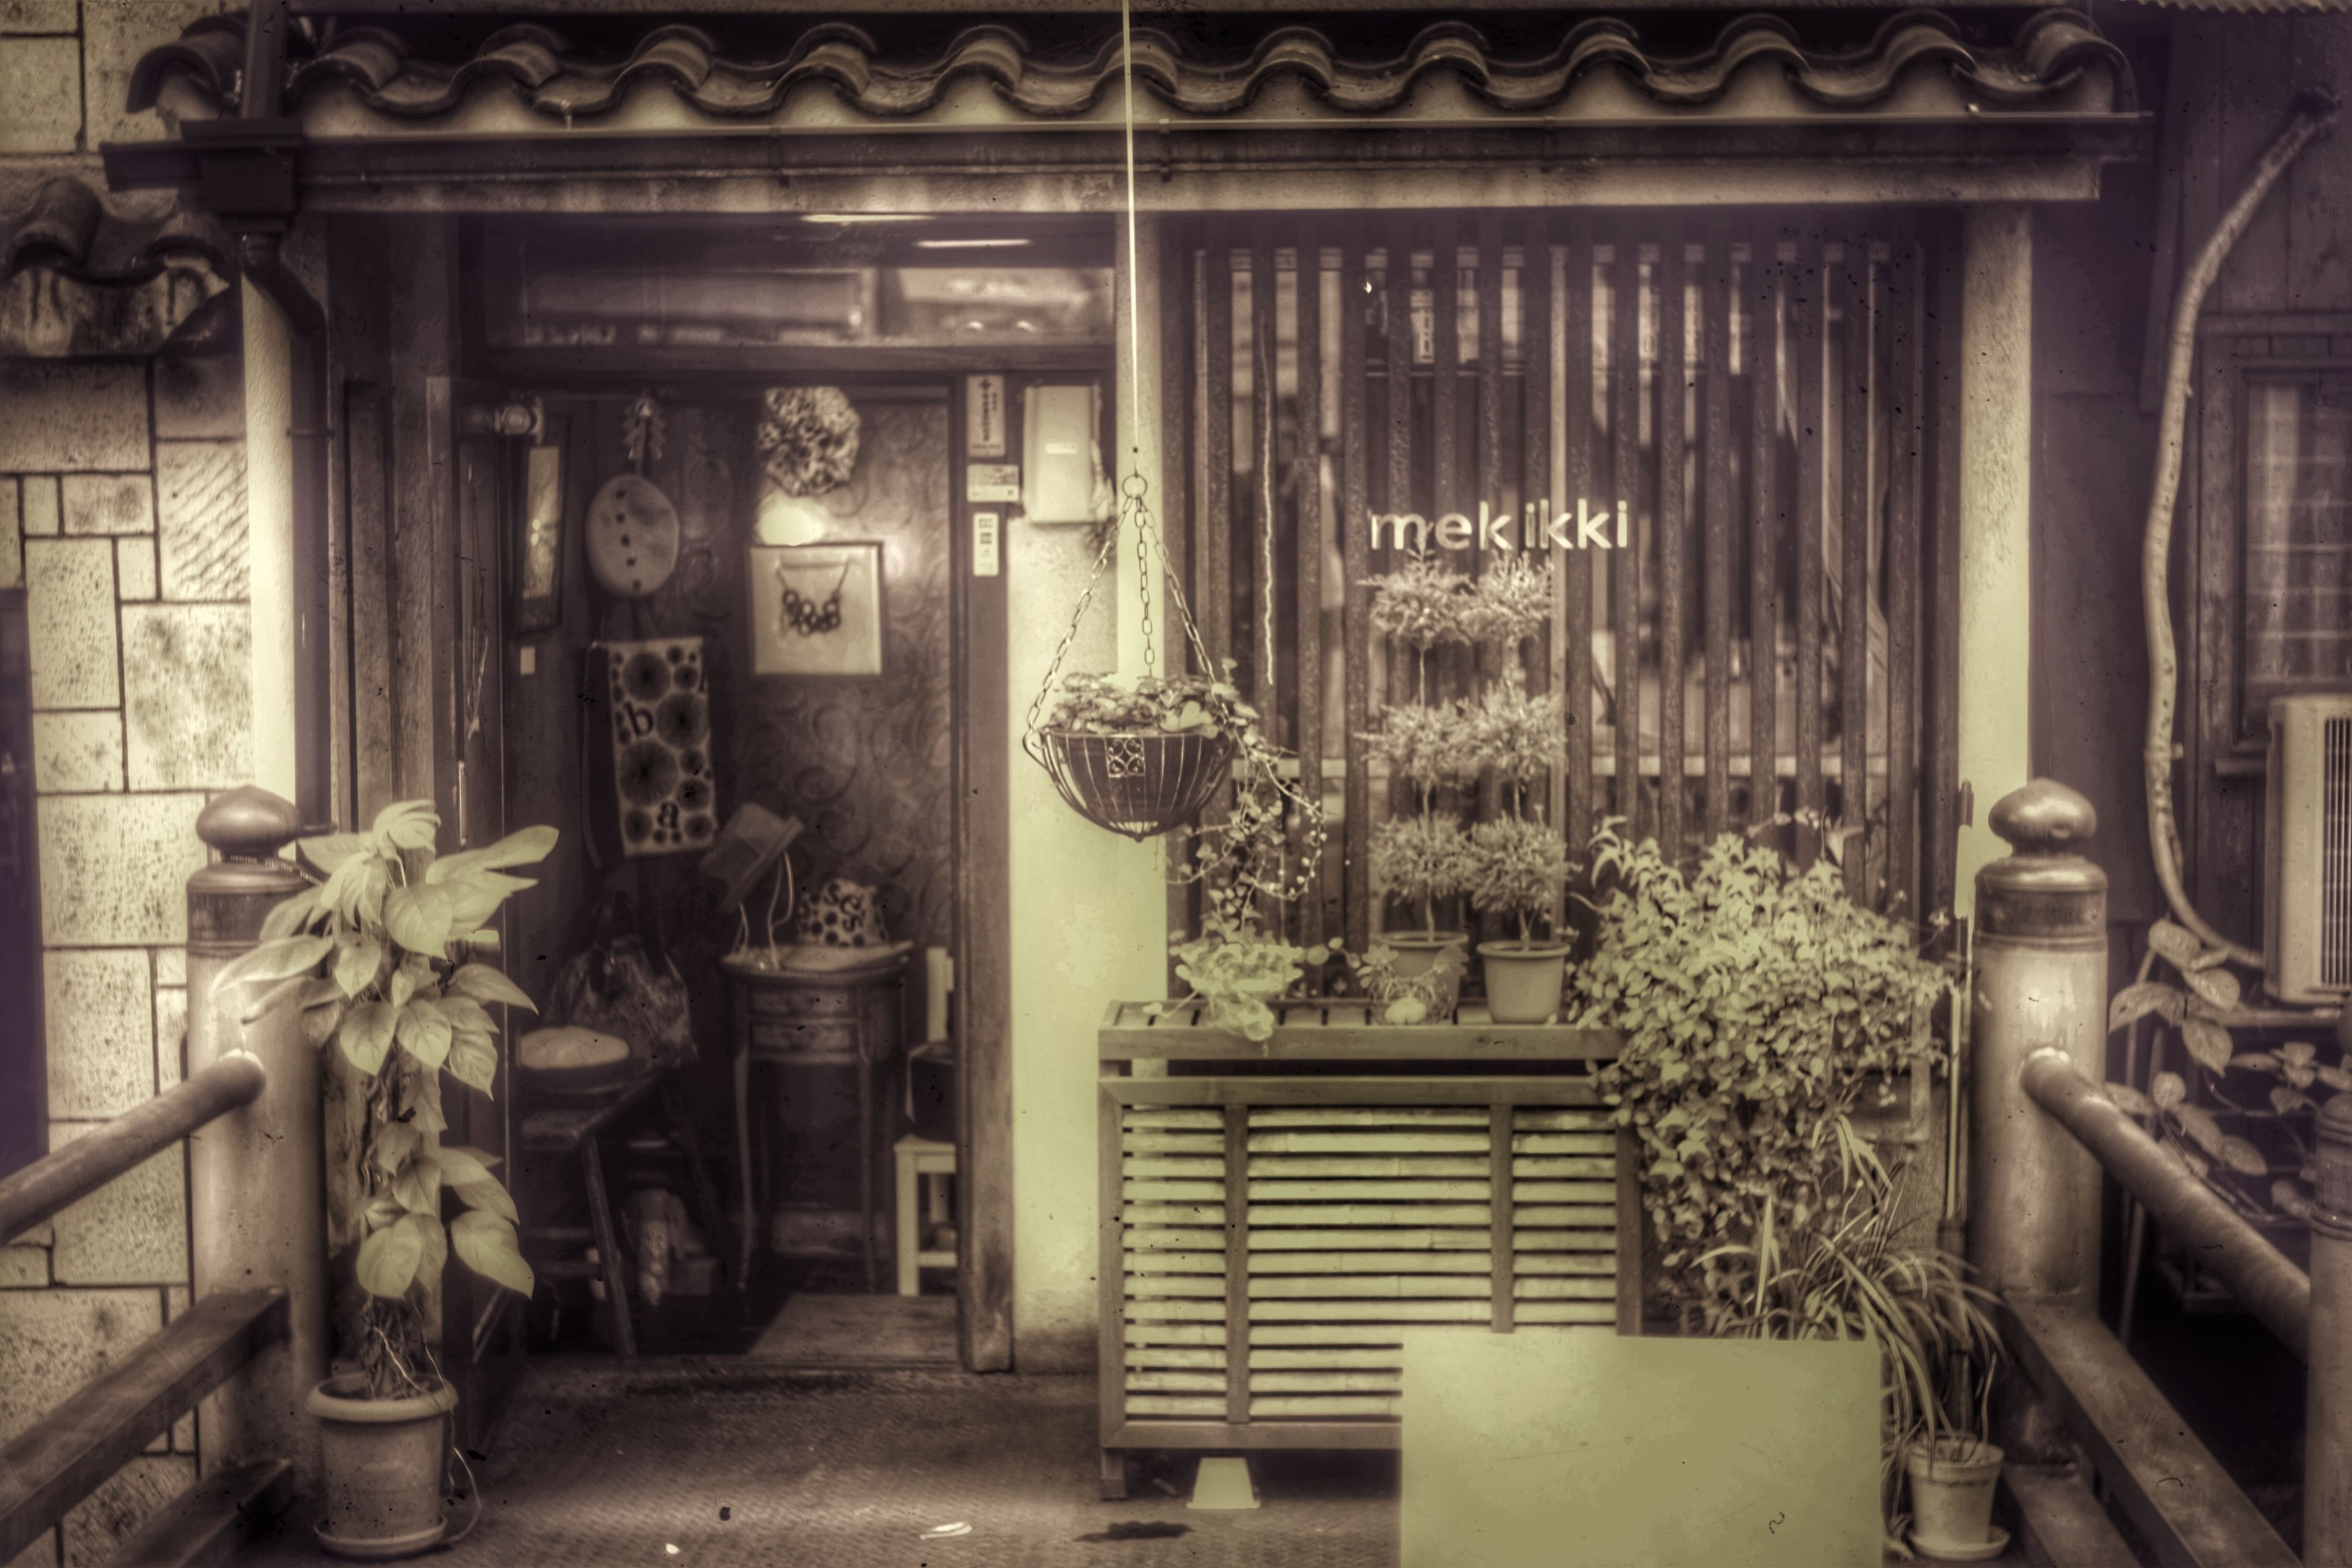 architecture, built structure, building exterior, house, door, old, window, abandoned, entrance, wood - material, potted plant, closed, no people, day, plant, indoors, obsolete, building, residential structure